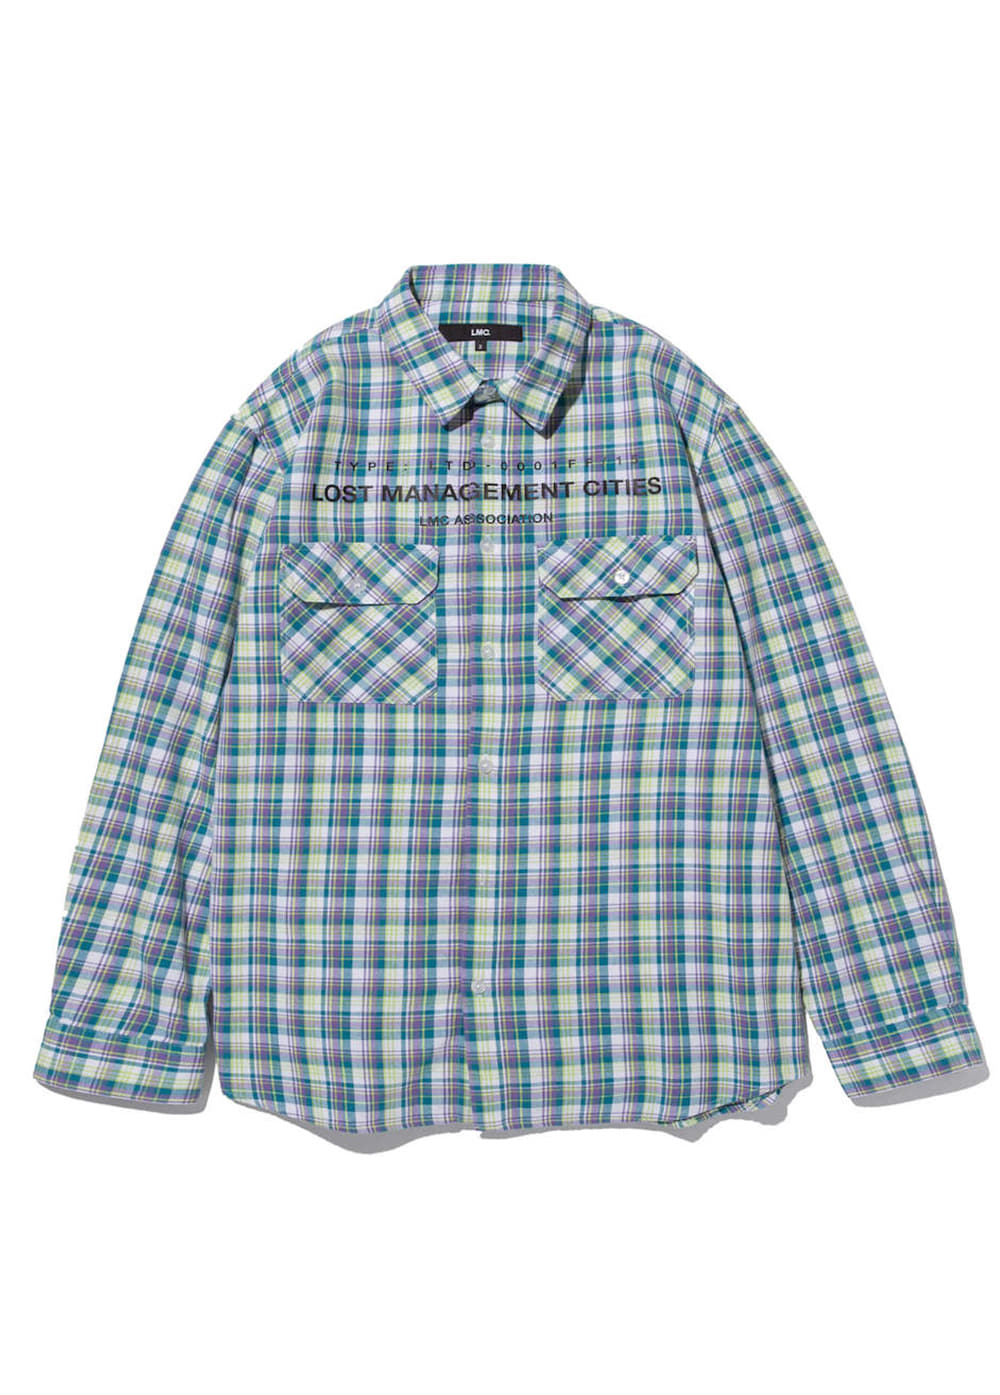 LMC TOP ASSOCIATION PLAID SHIRT teal